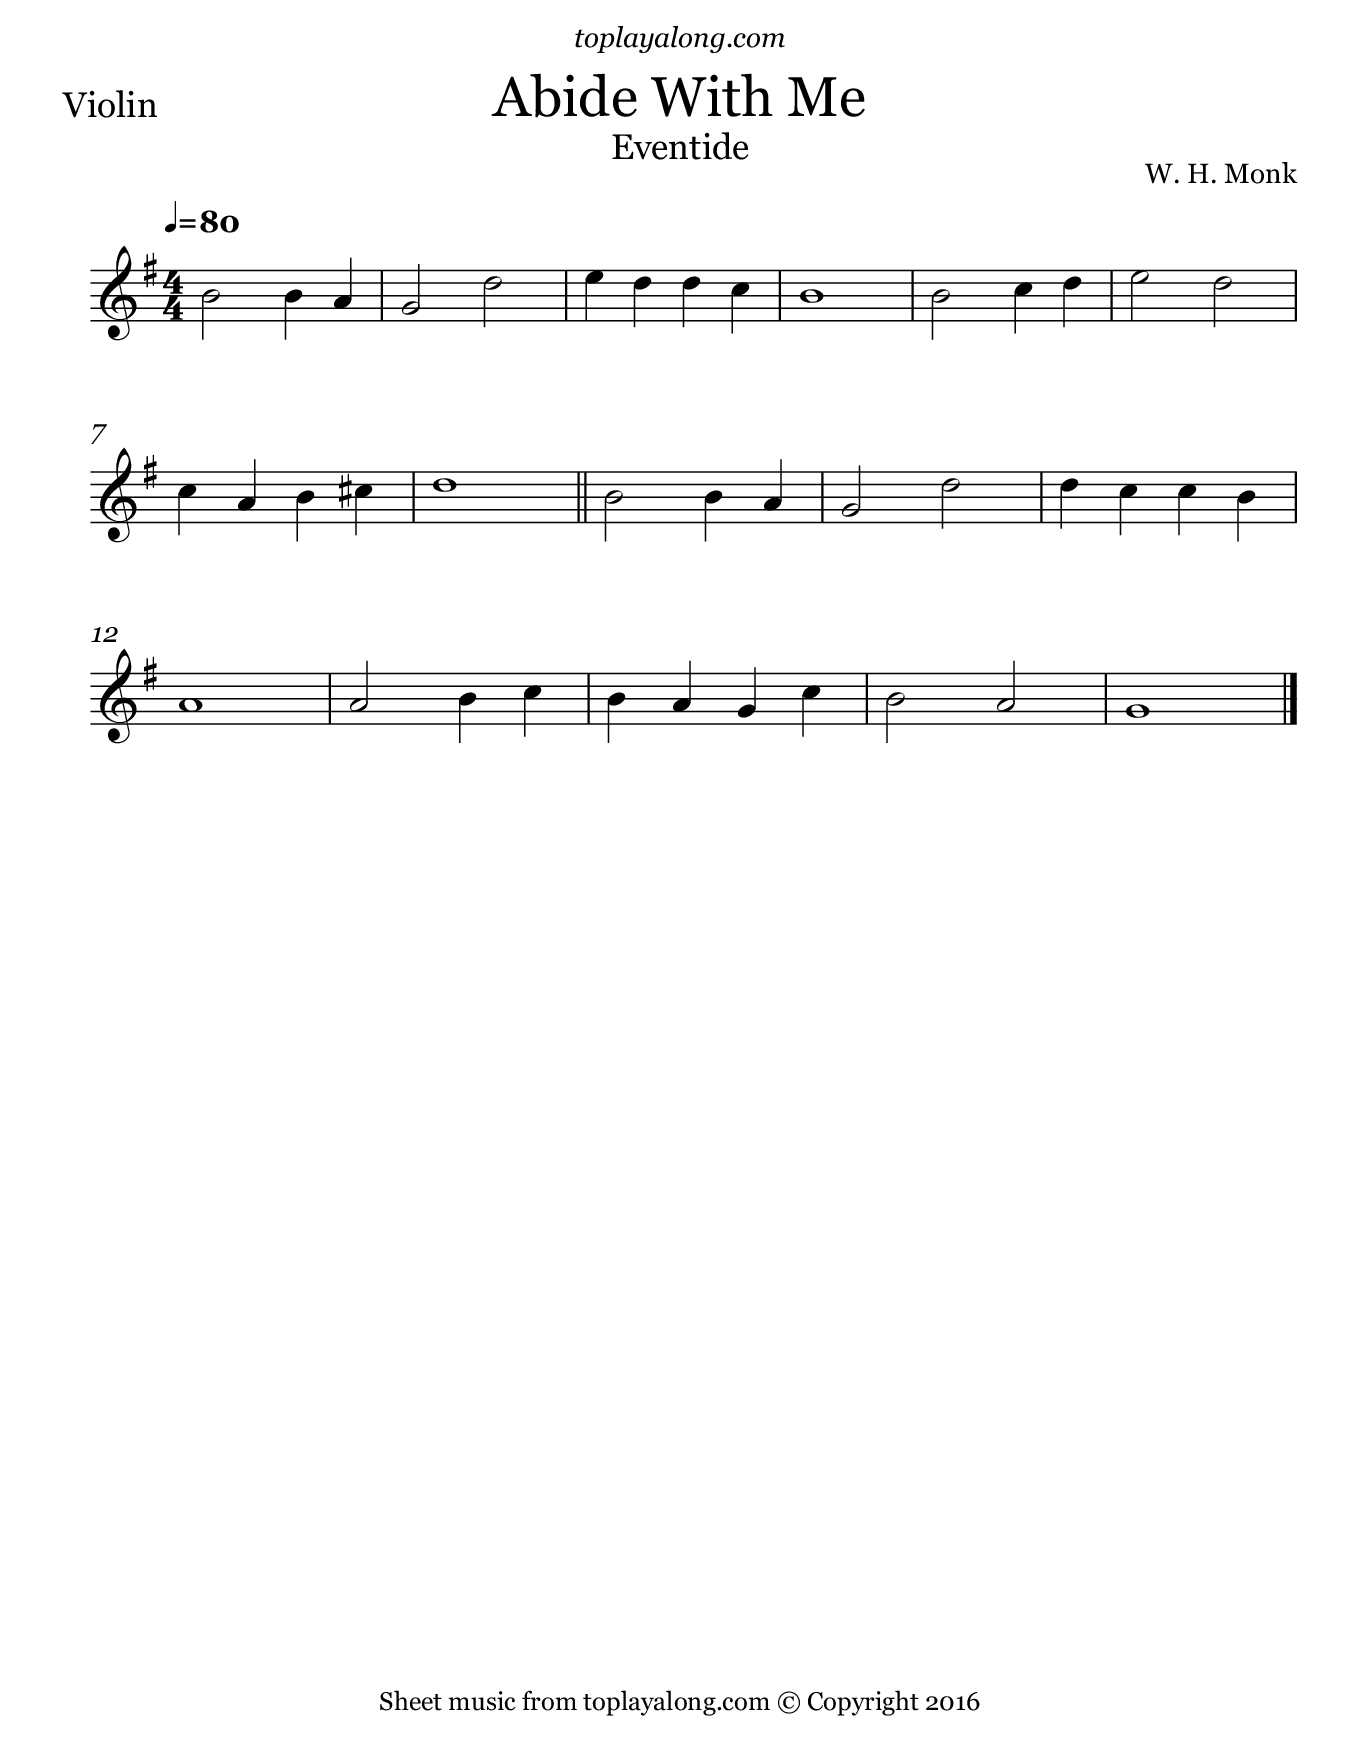 Abide With Me (Eventide). Sheet music for Violin, page 1.